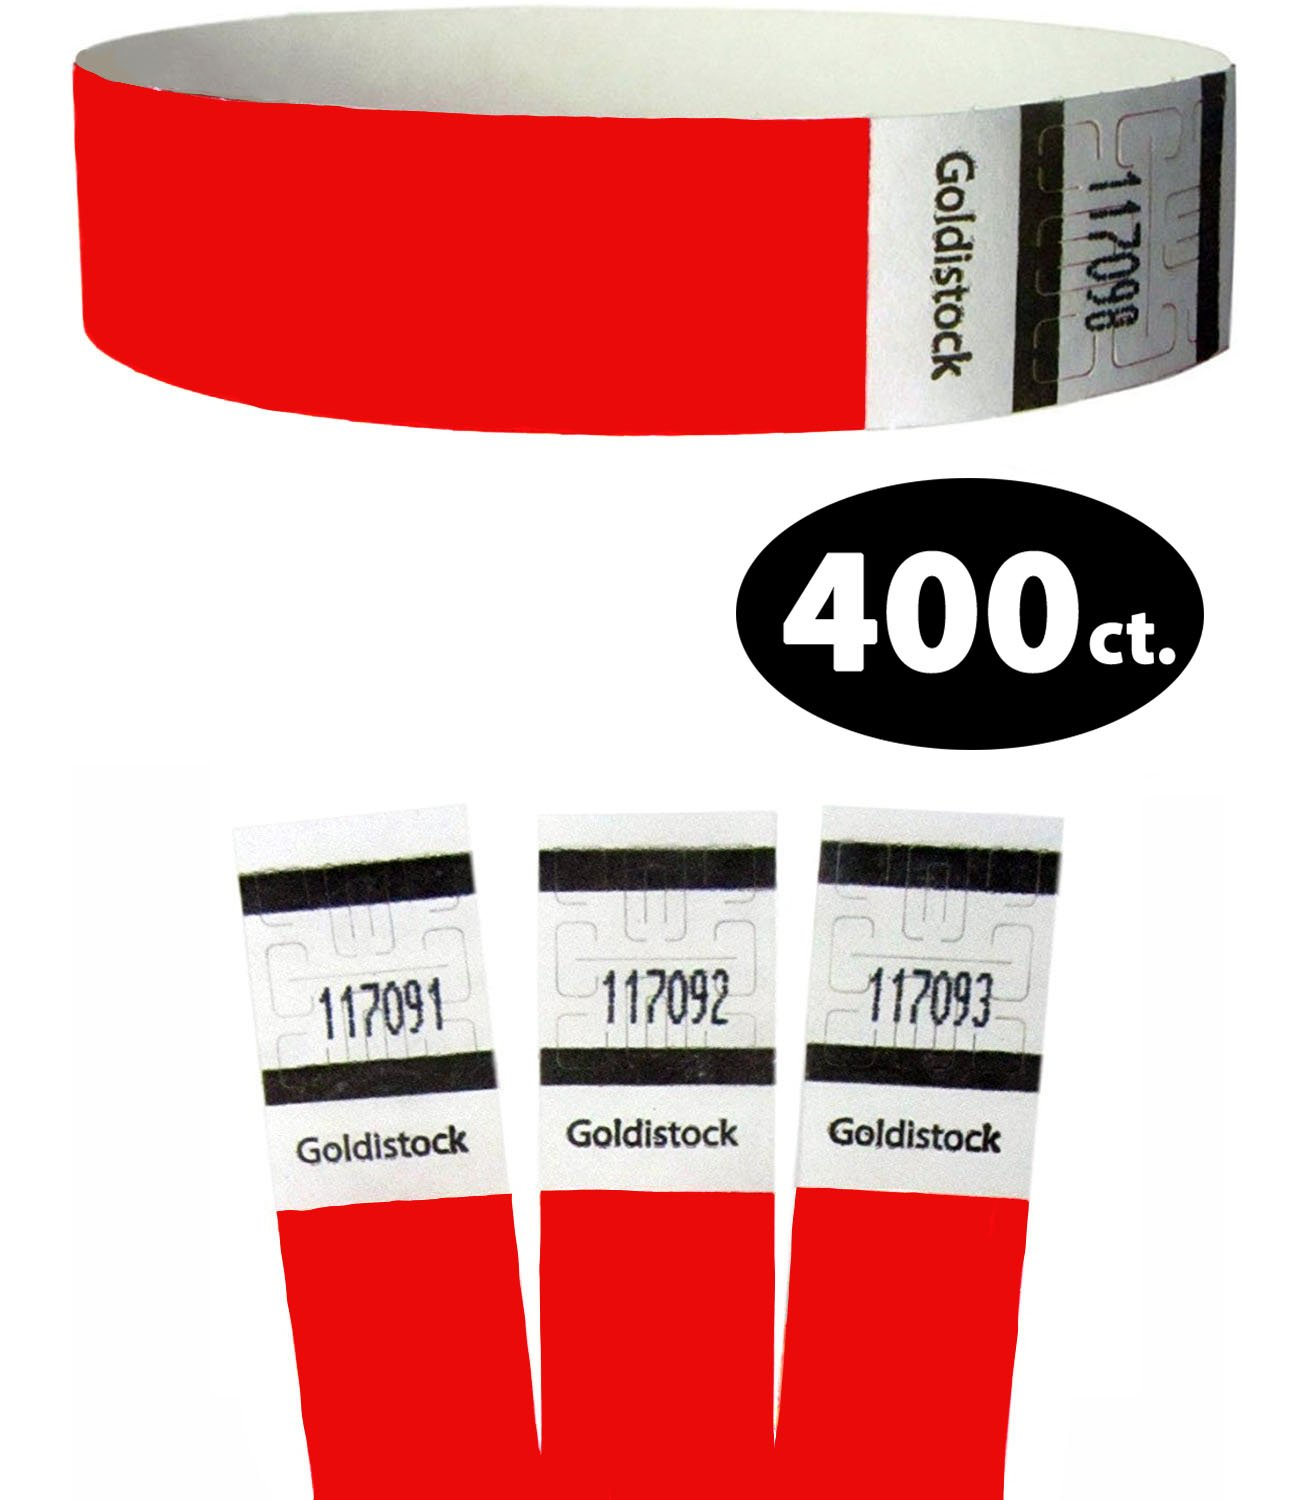 Goldistock 3/4 Tyvek Wristbands The Ultimate Variety Pack 16 Colors - Green, Blue, Red, Orange, Yellow, Pink, Purple, Gold, Silver, Aqua, White, Black, Evergreen, Berry, Sky Blue, Sunrise - 160 Ct.